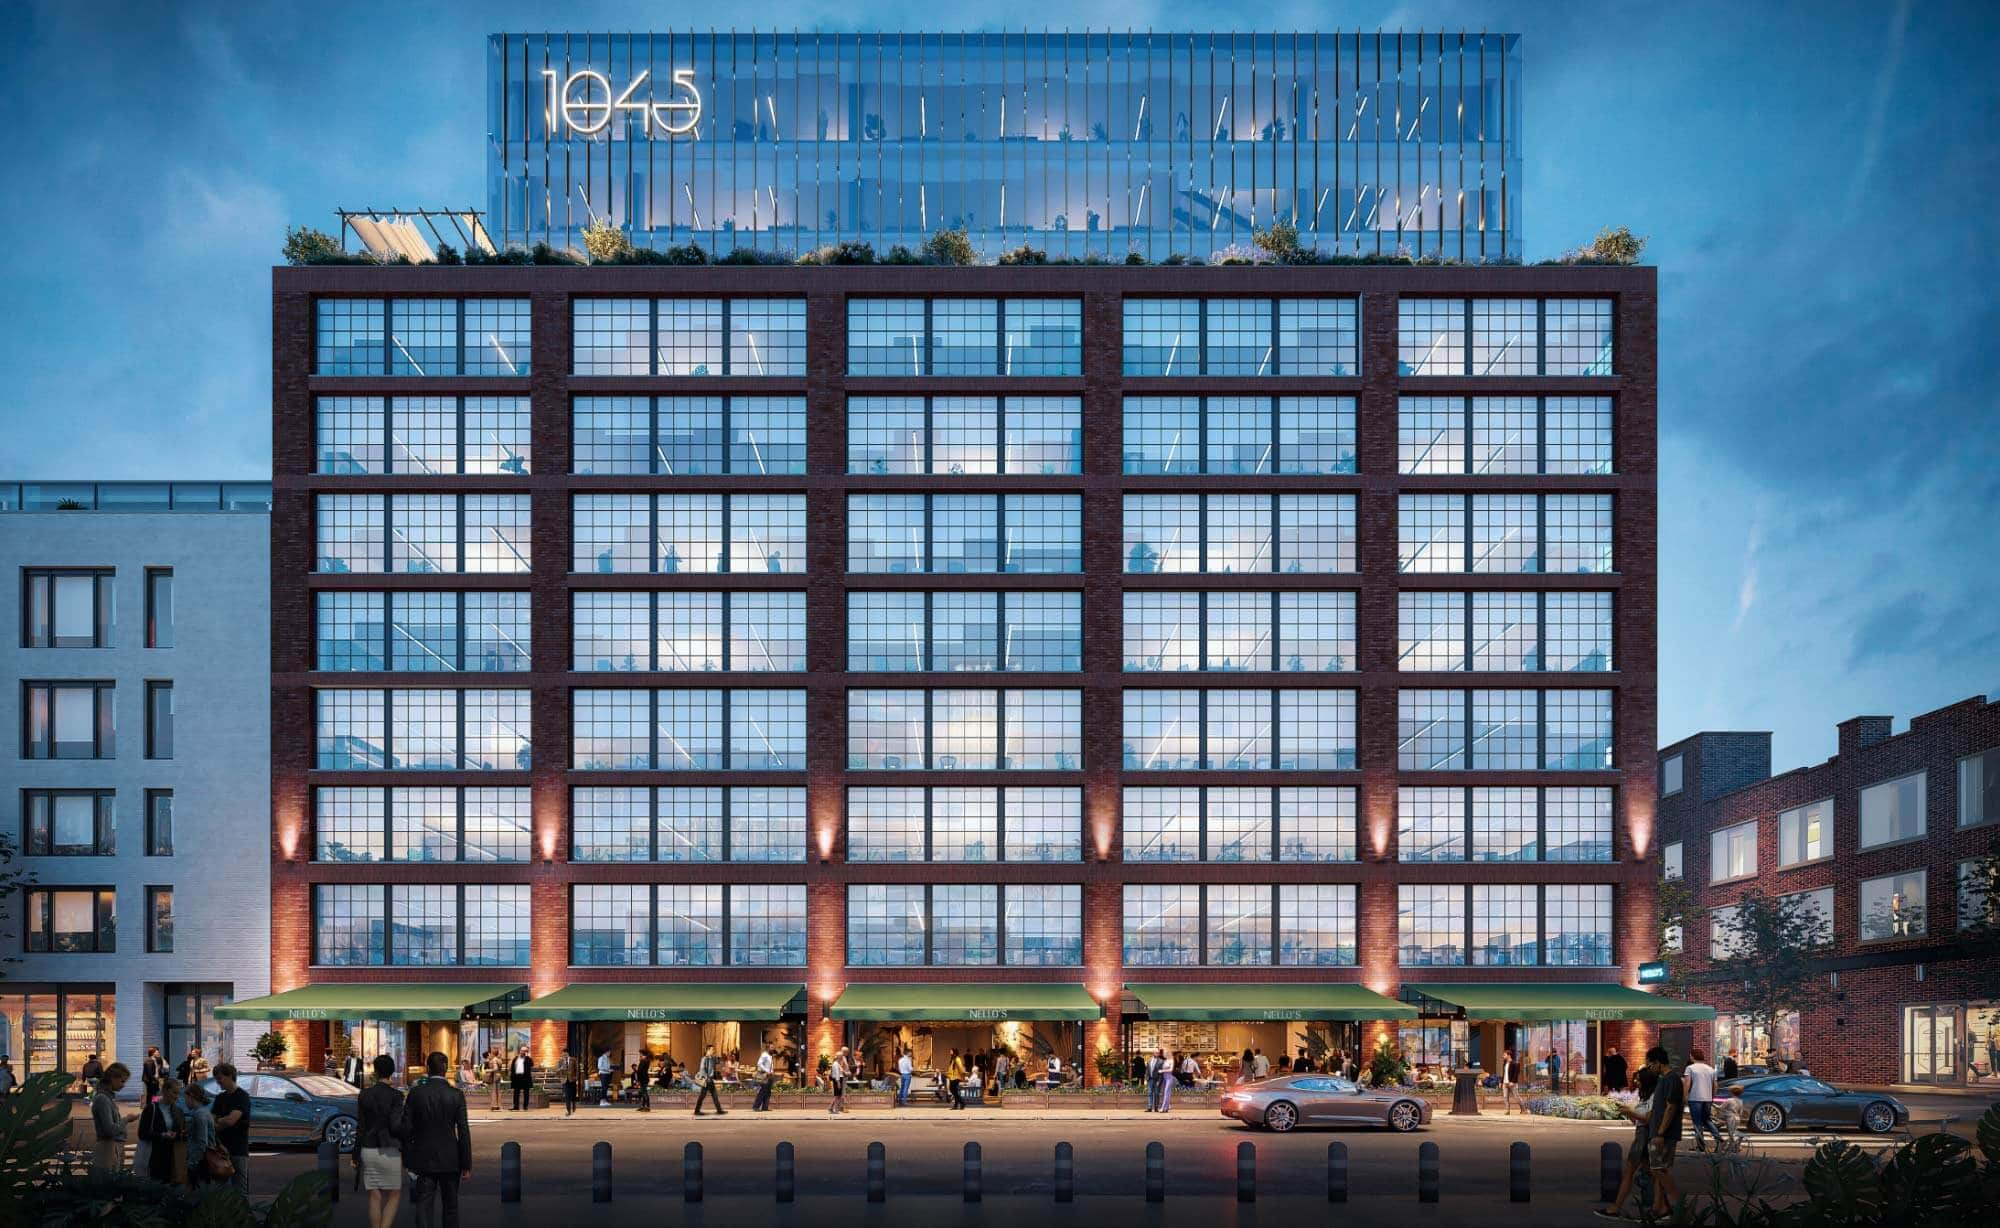 Full hero rendering of 1045 on Fulton, commercial office space at night